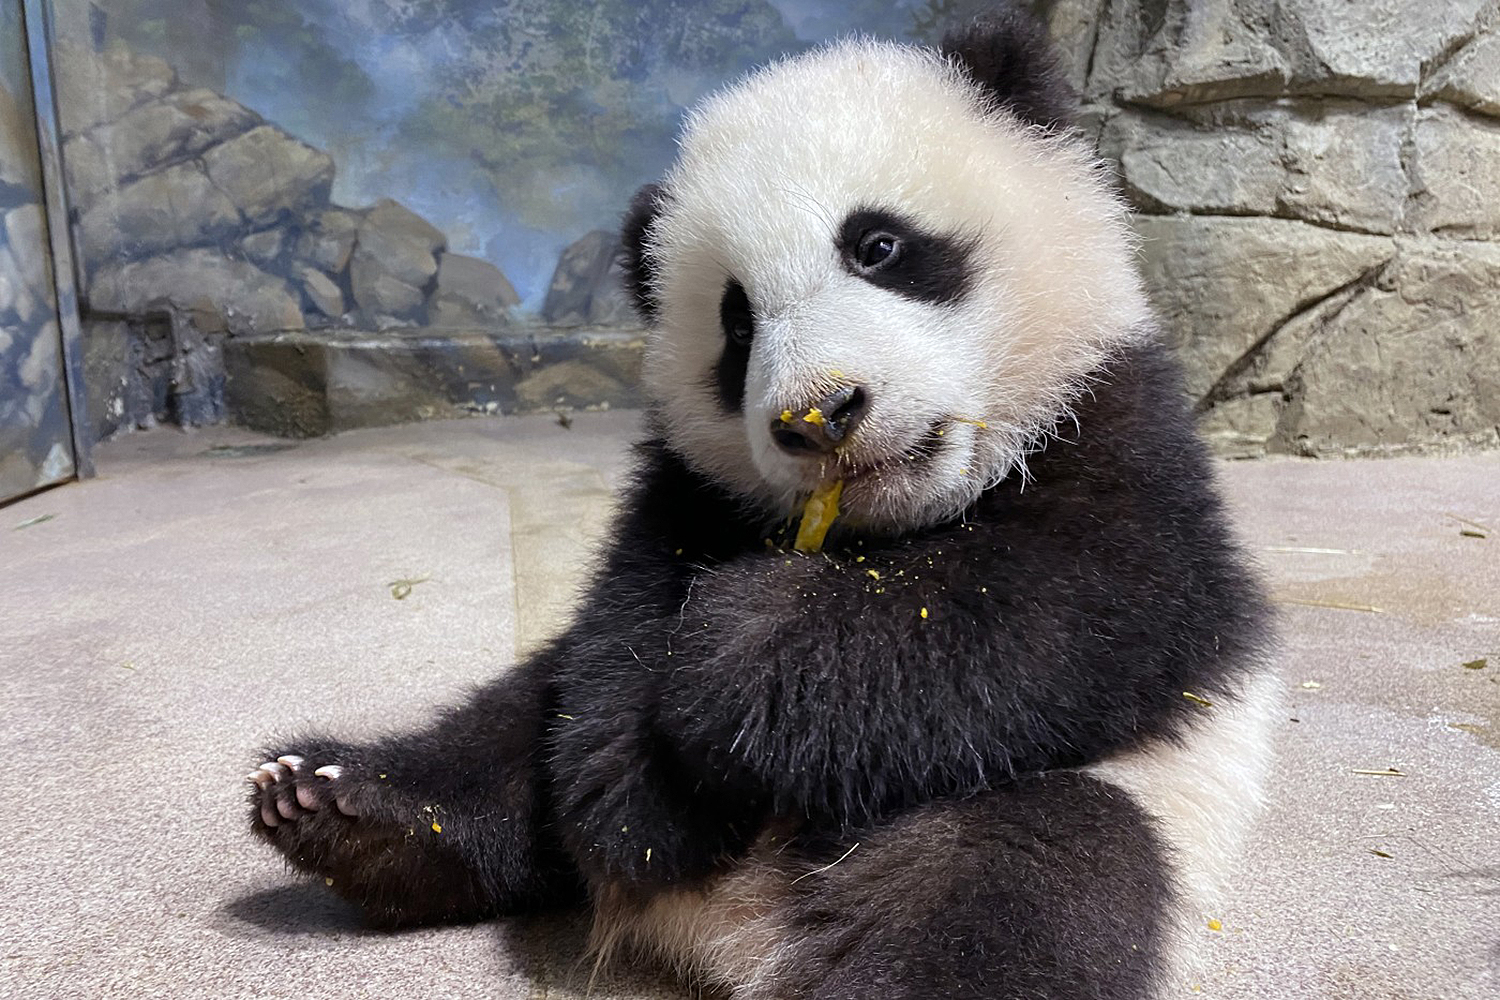 Five-month-old giant panda cub Xiao Qi Ji